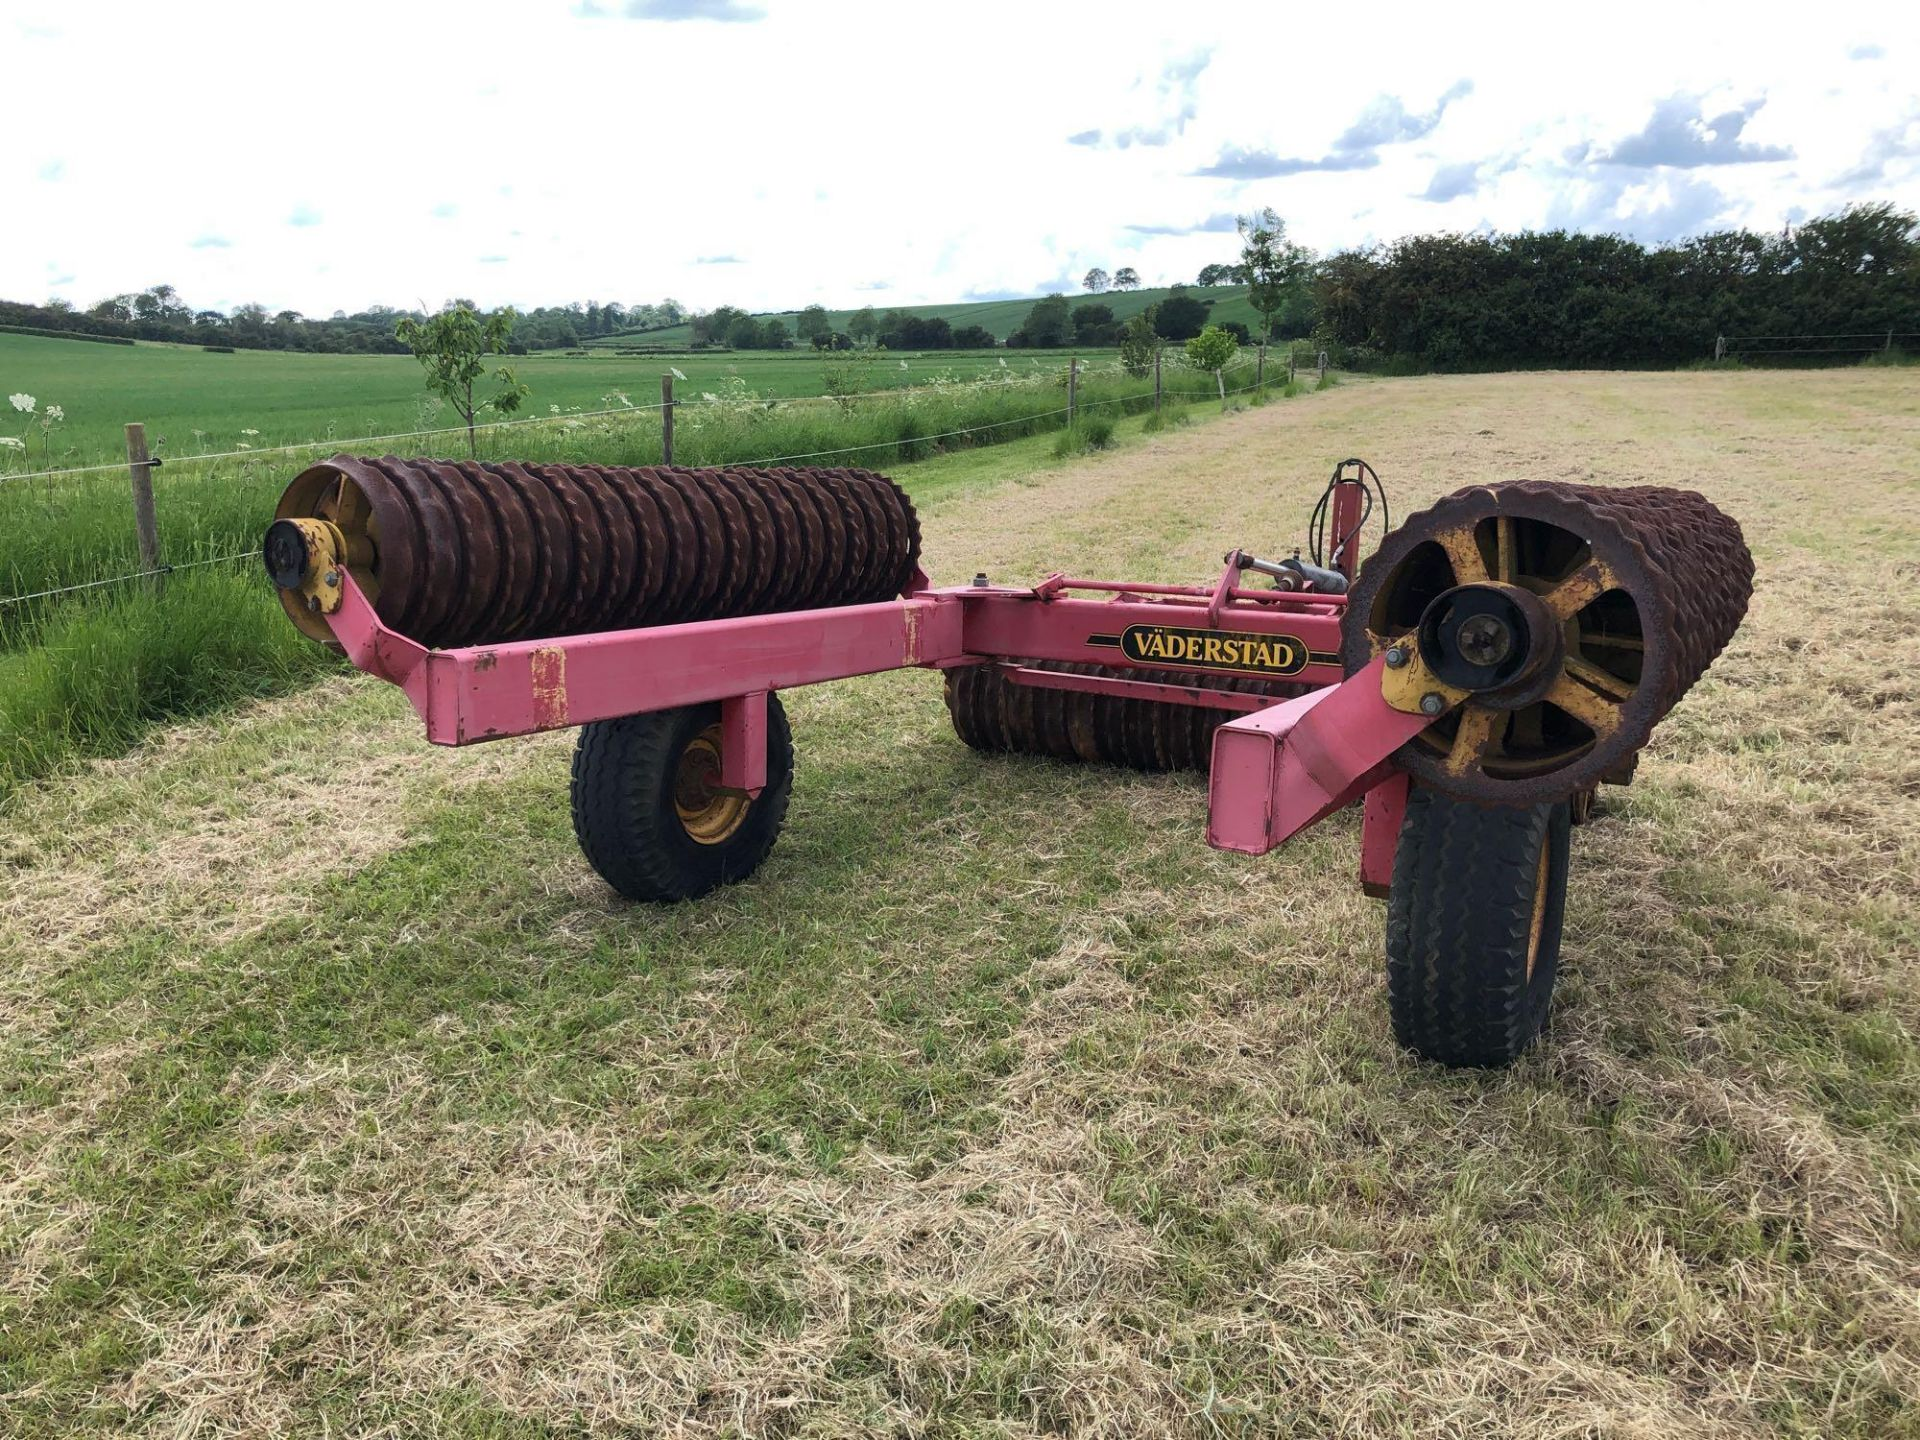 Vaderstad Rollex 620 Cambridge rolls, 6.2m hydraulic folding on 10.0/80-12 wheels and tyres. Serial - Image 12 of 12